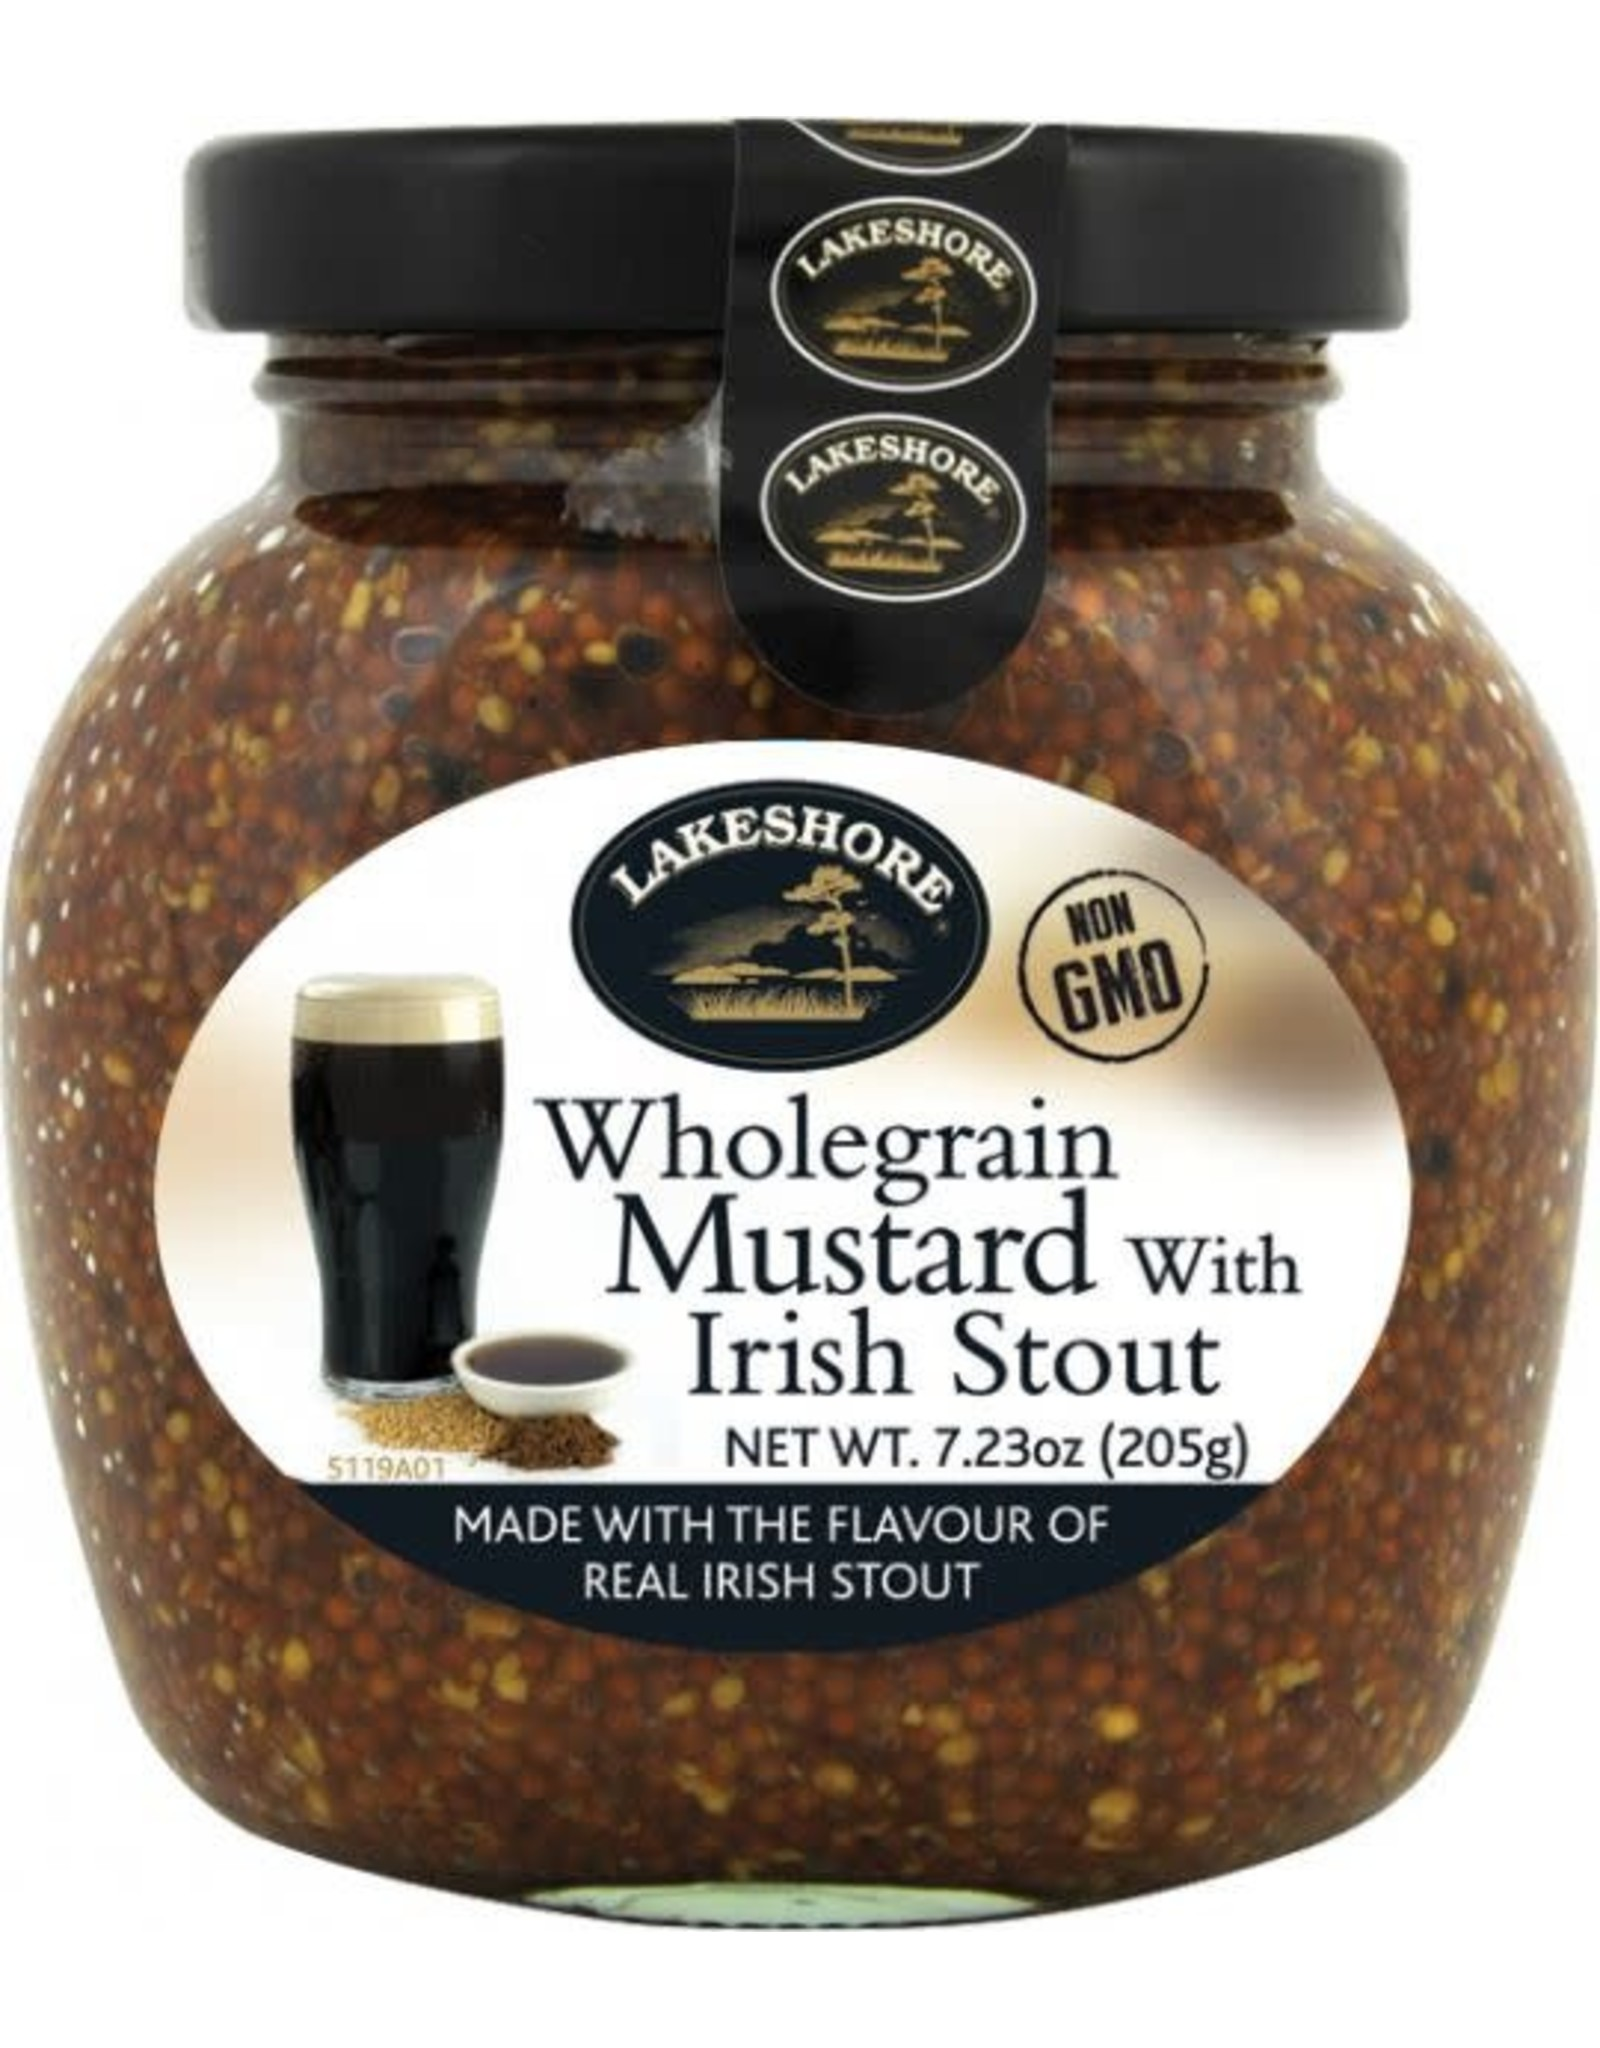 Lakeshore Irish Stout Mustard 205g (7.2oz)